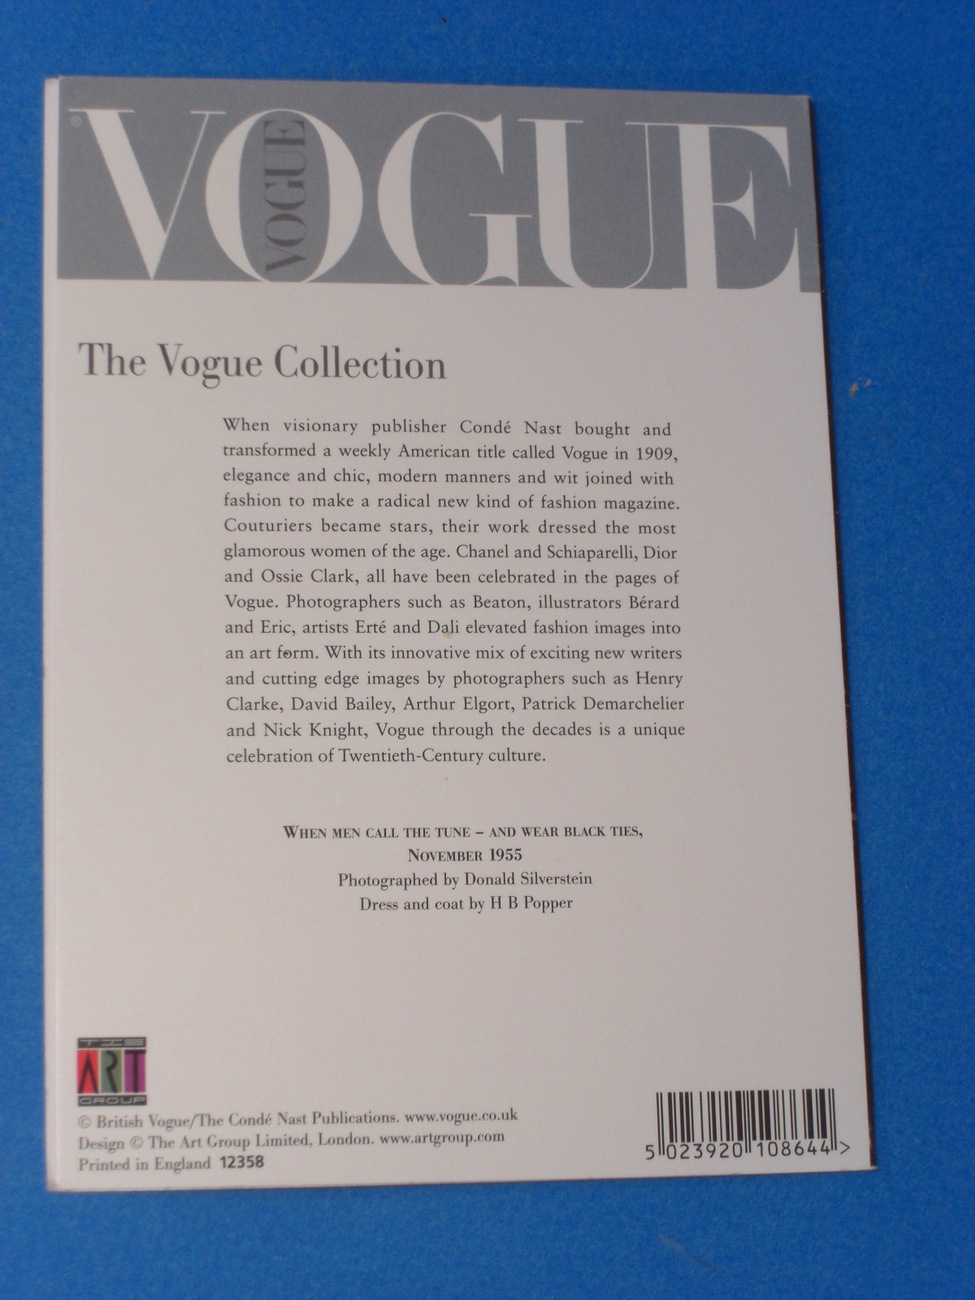 When Men Call The Tune 1955 The Vogue Collection Note Card